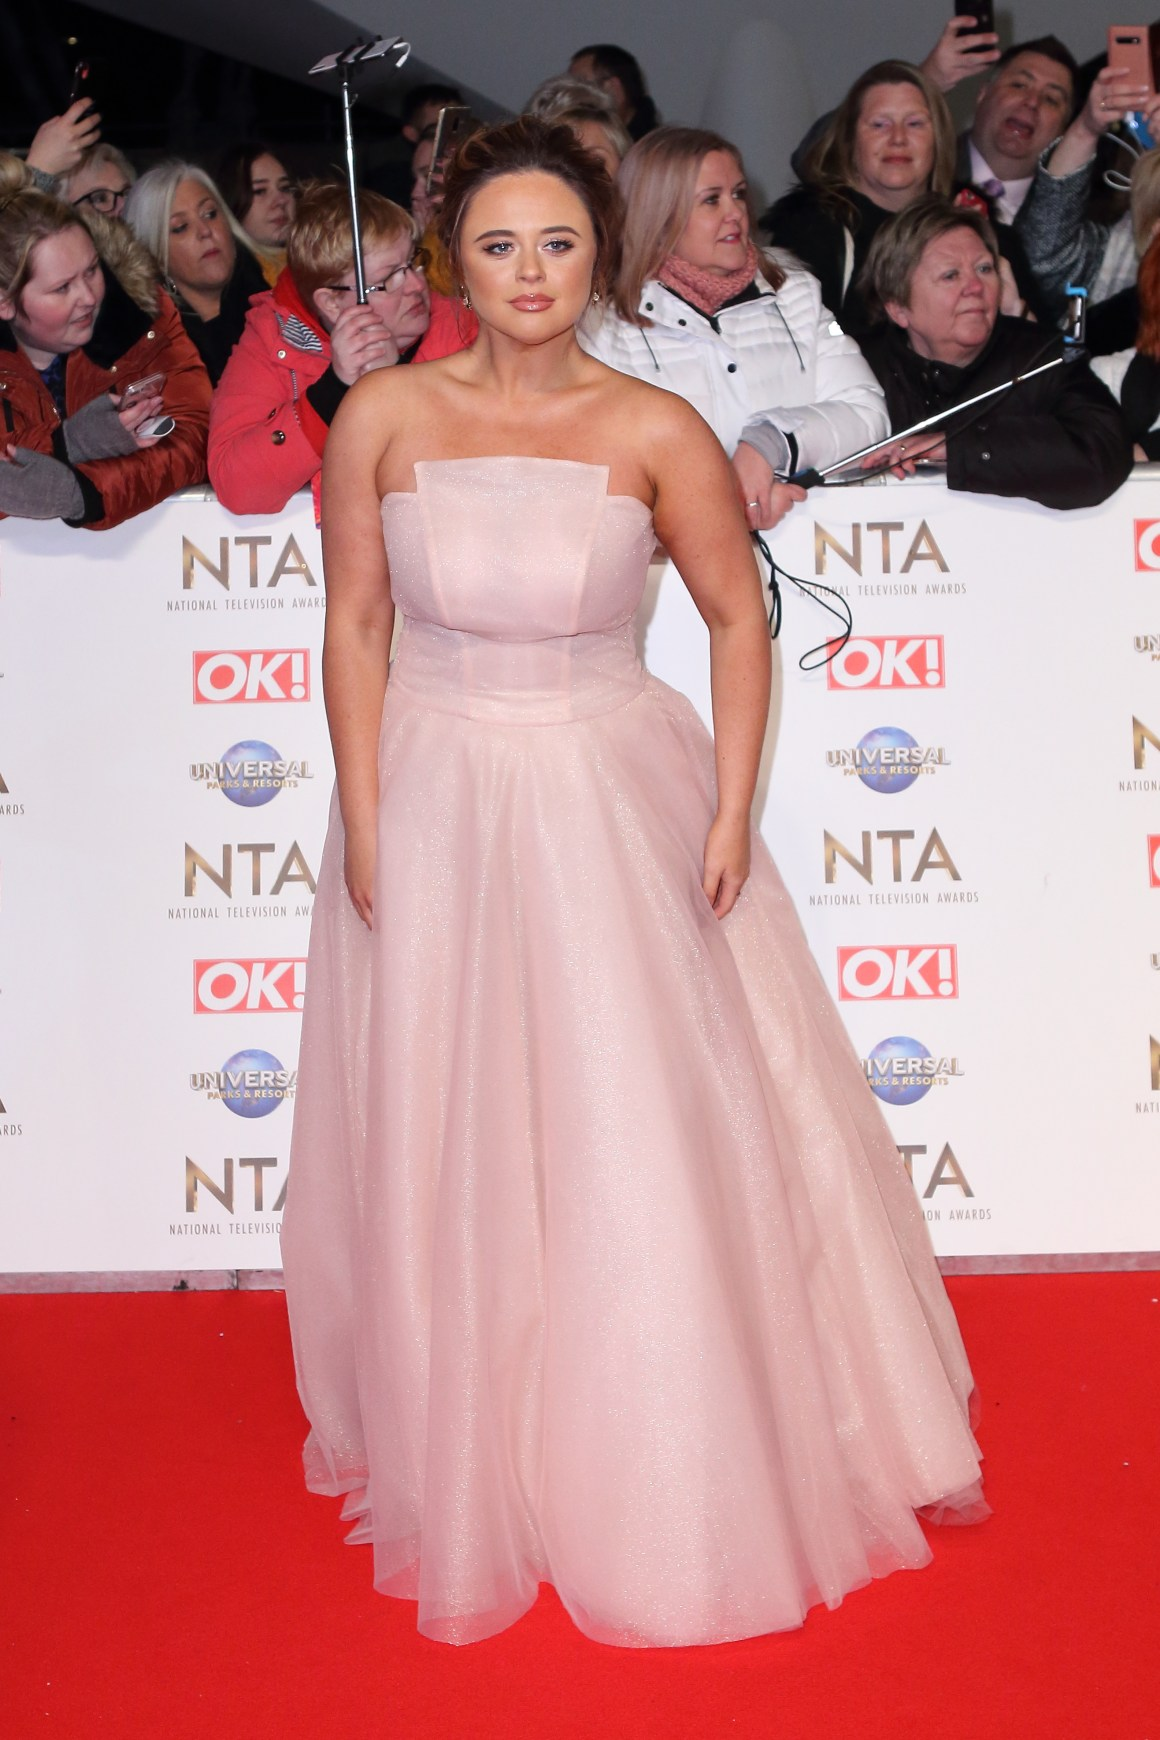 Emily Atack says she wants audience to experience her comedy as a 'sense of escapism'